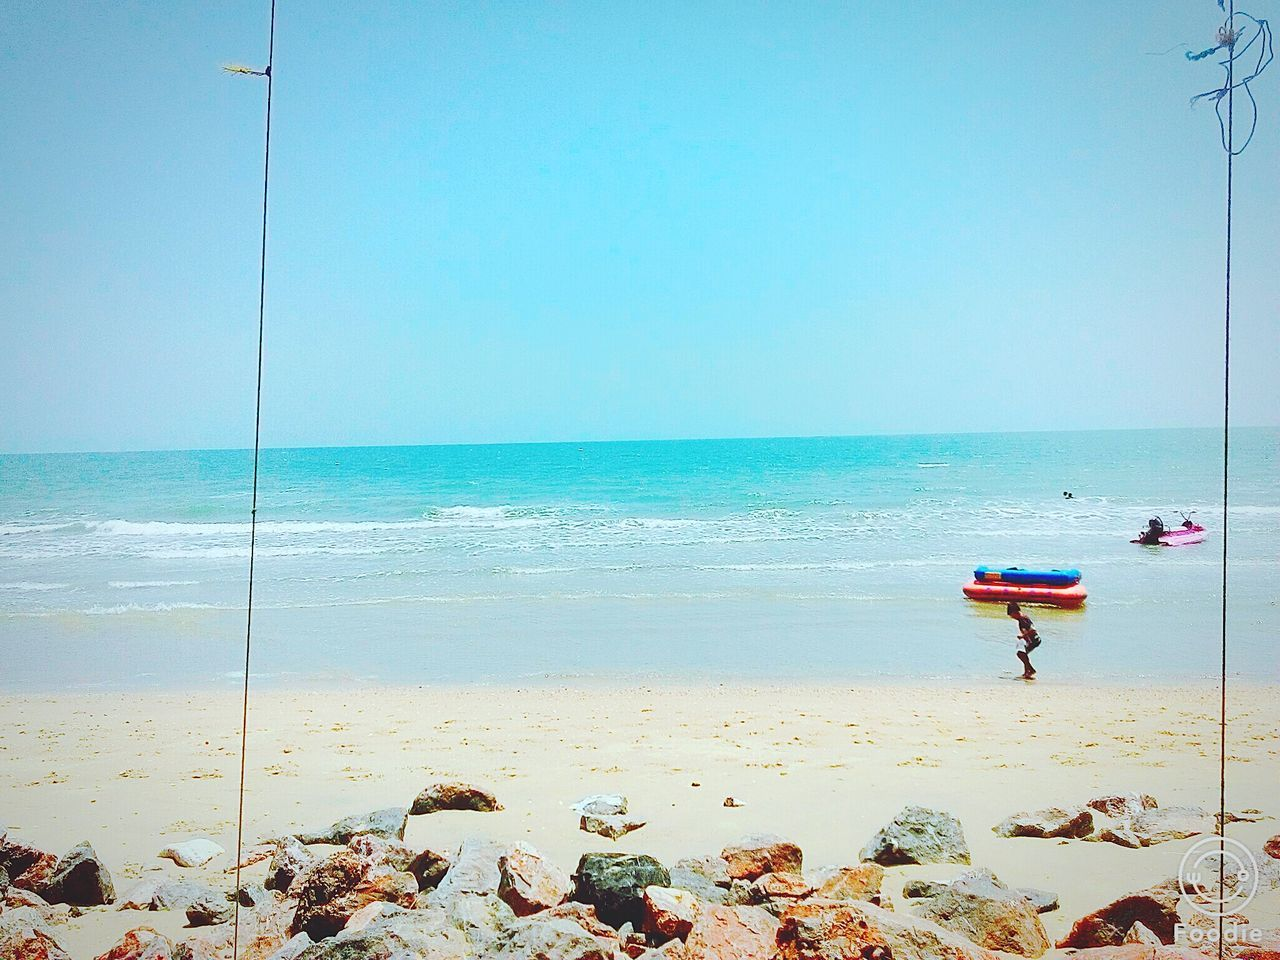 sea, horizon over water, water, beach, real people, shore, clear sky, nature, day, scenics, beauty in nature, men, full length, outdoors, one person, lifestyles, blue, sky, people